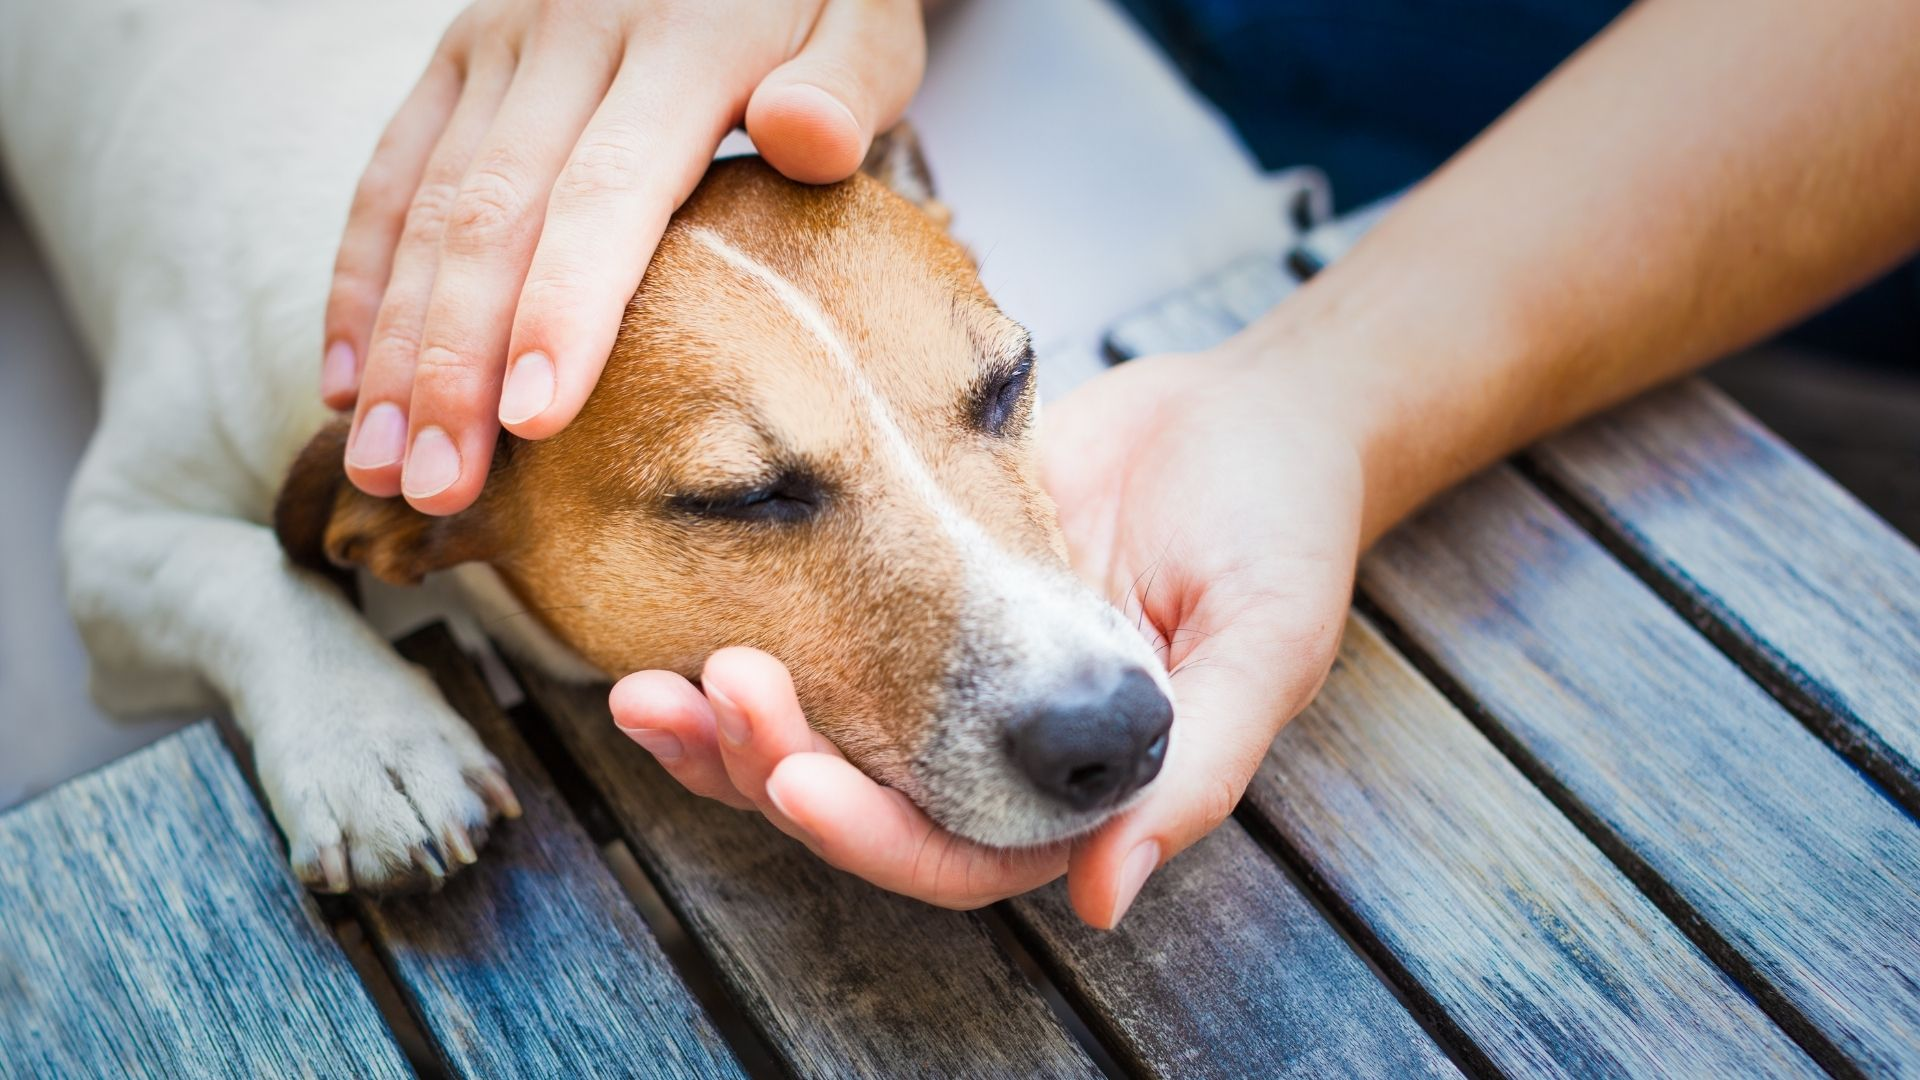 You should not give your dog any pain medication unless you ask your vet first. Even if you have given your dog ibuprofen before...